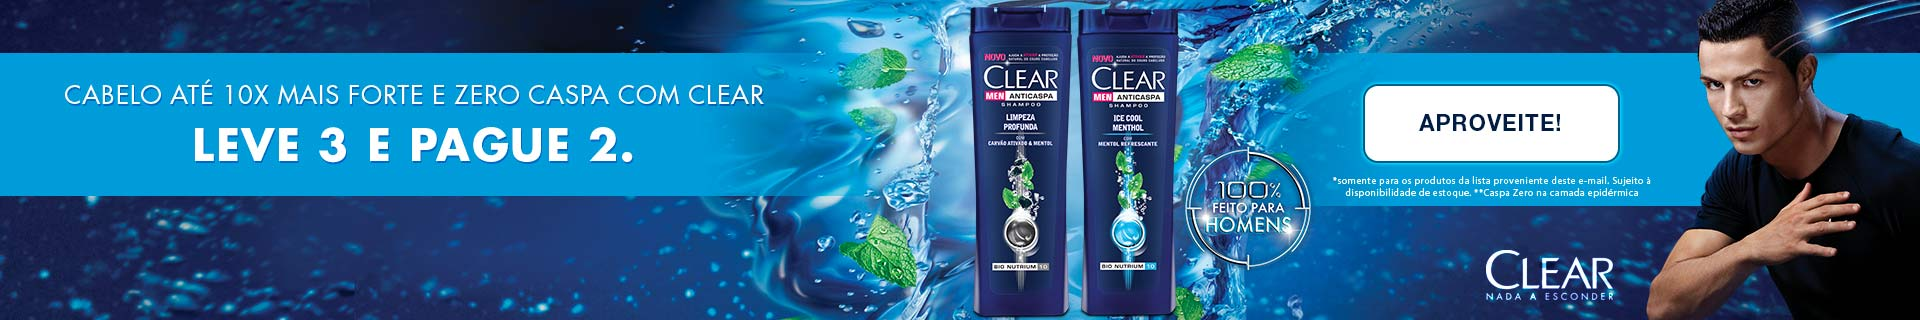 Home | Clear Leve 3 Pague 2 Unilever